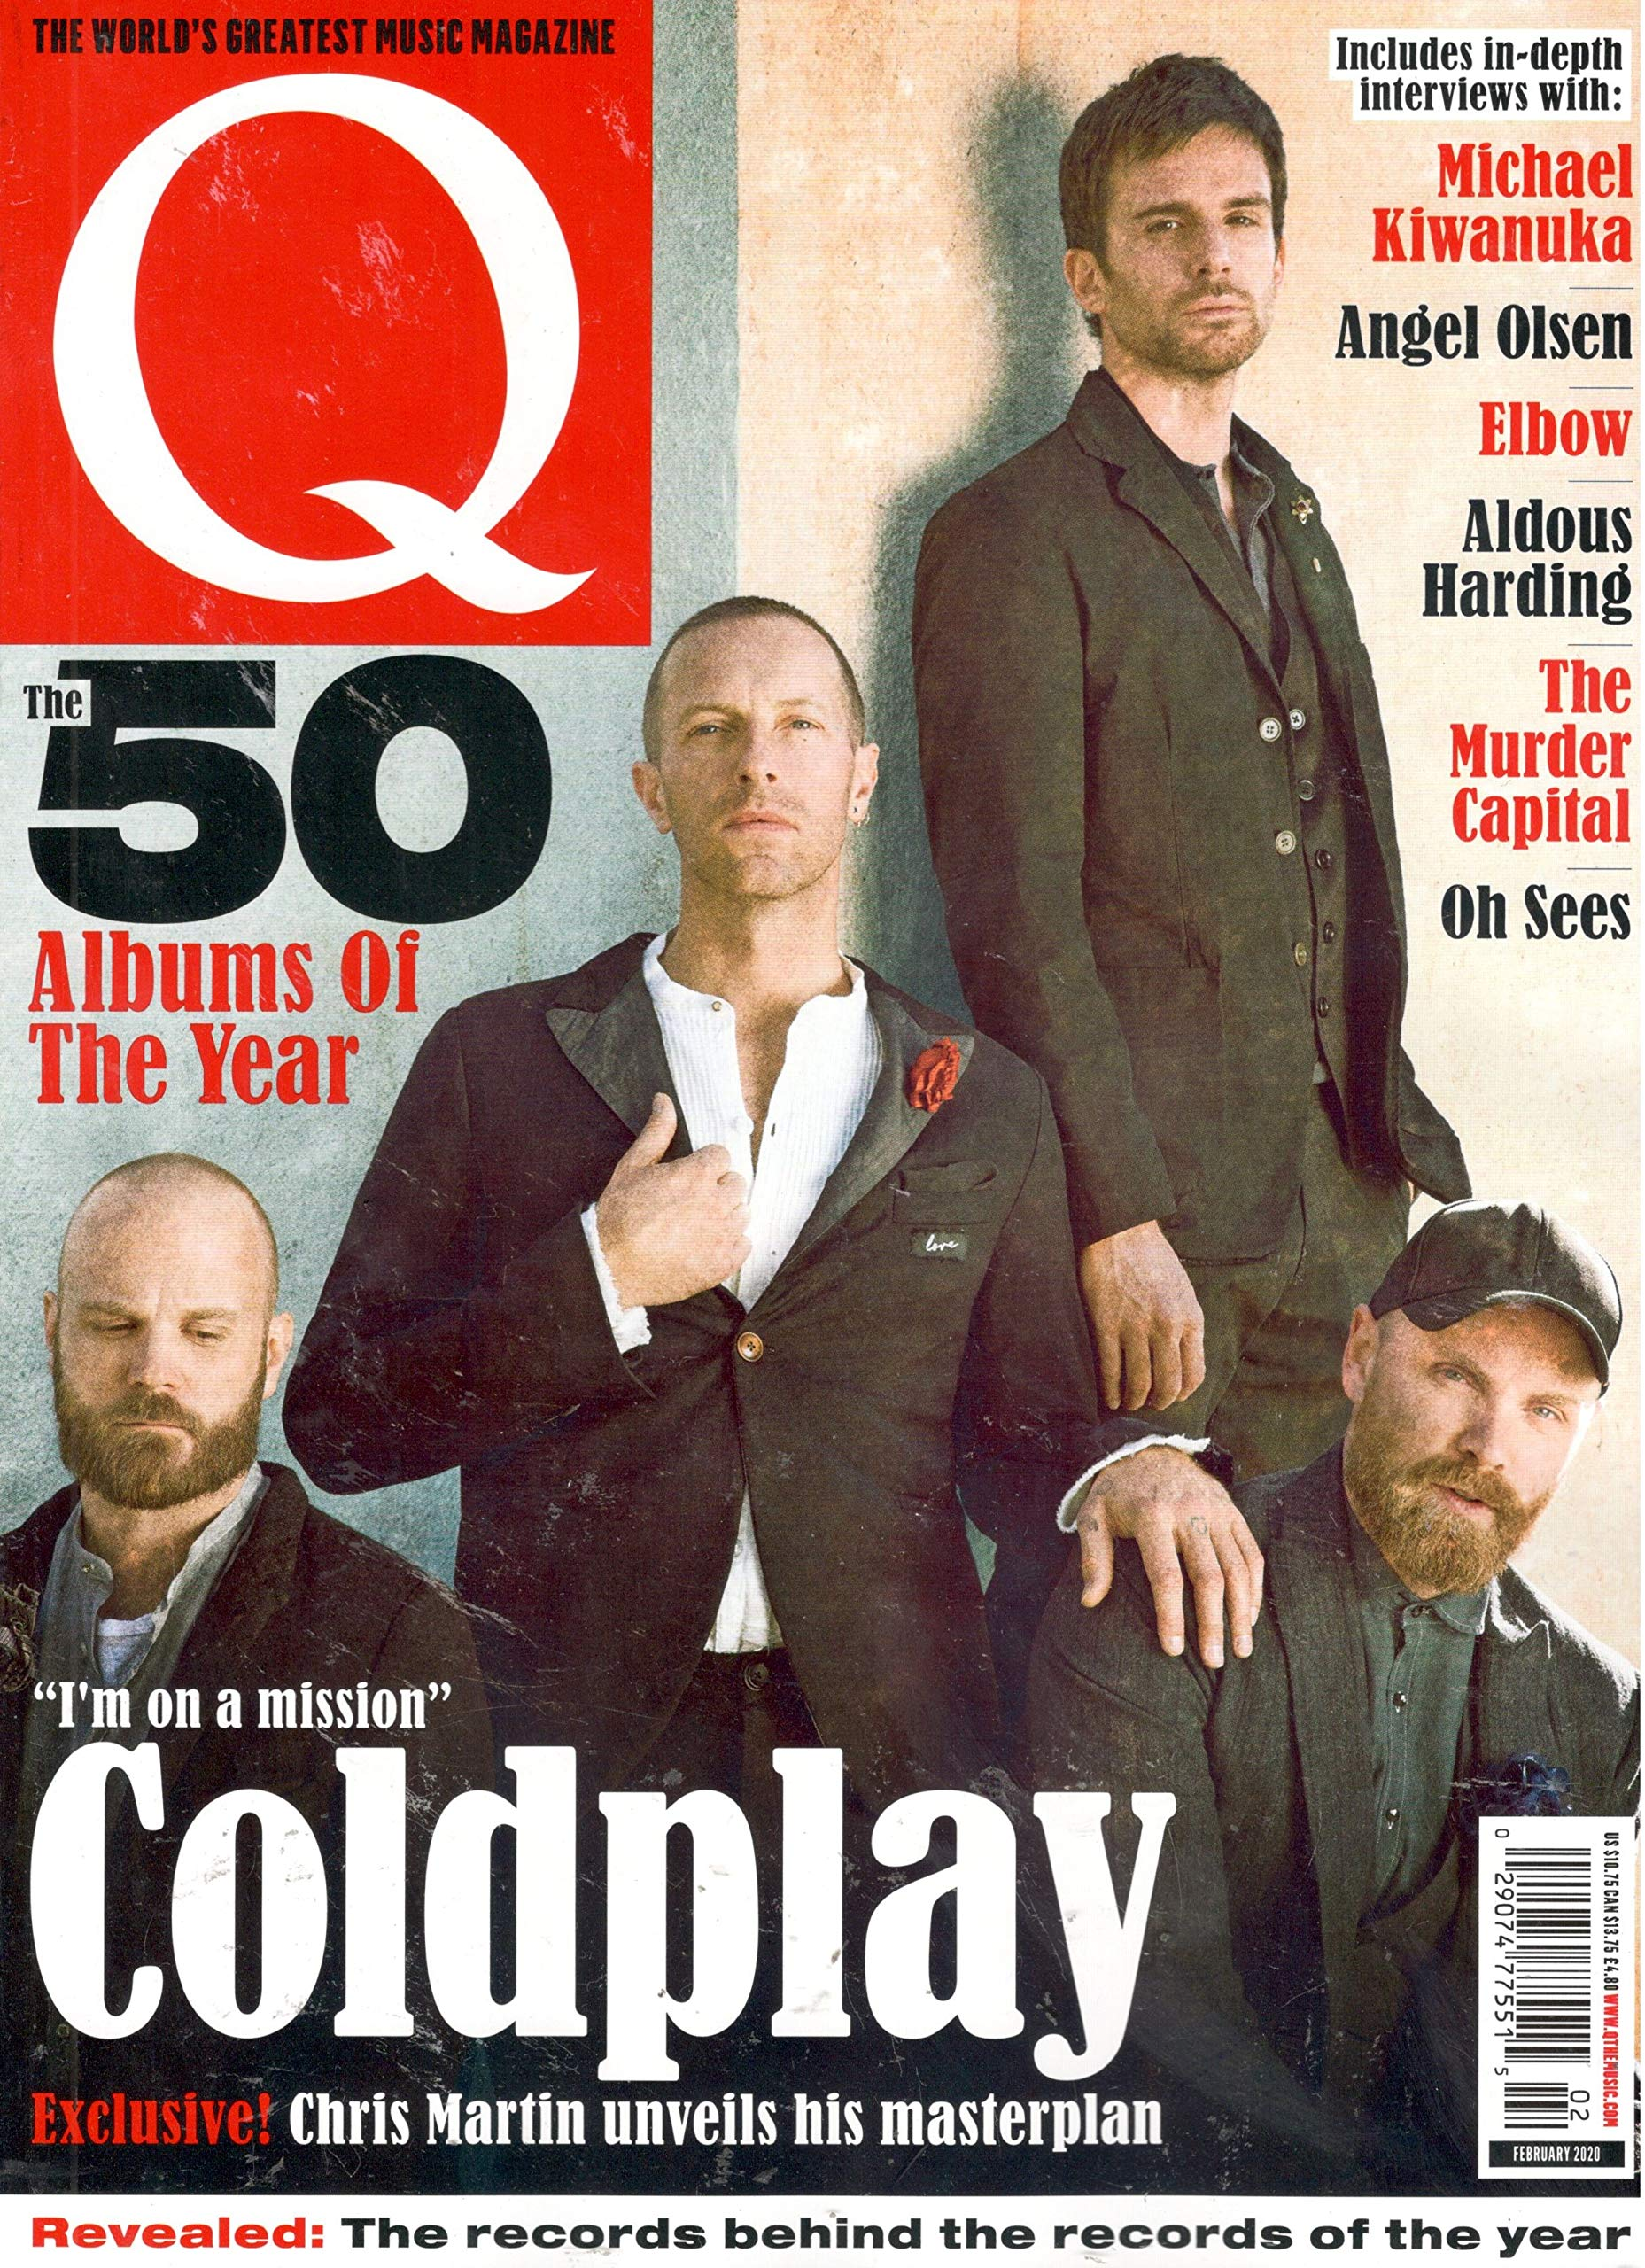 Q Magazine February 2020 The 50 Albums Of The Year Coldplay Cover Q Magazine Amazon Com Books